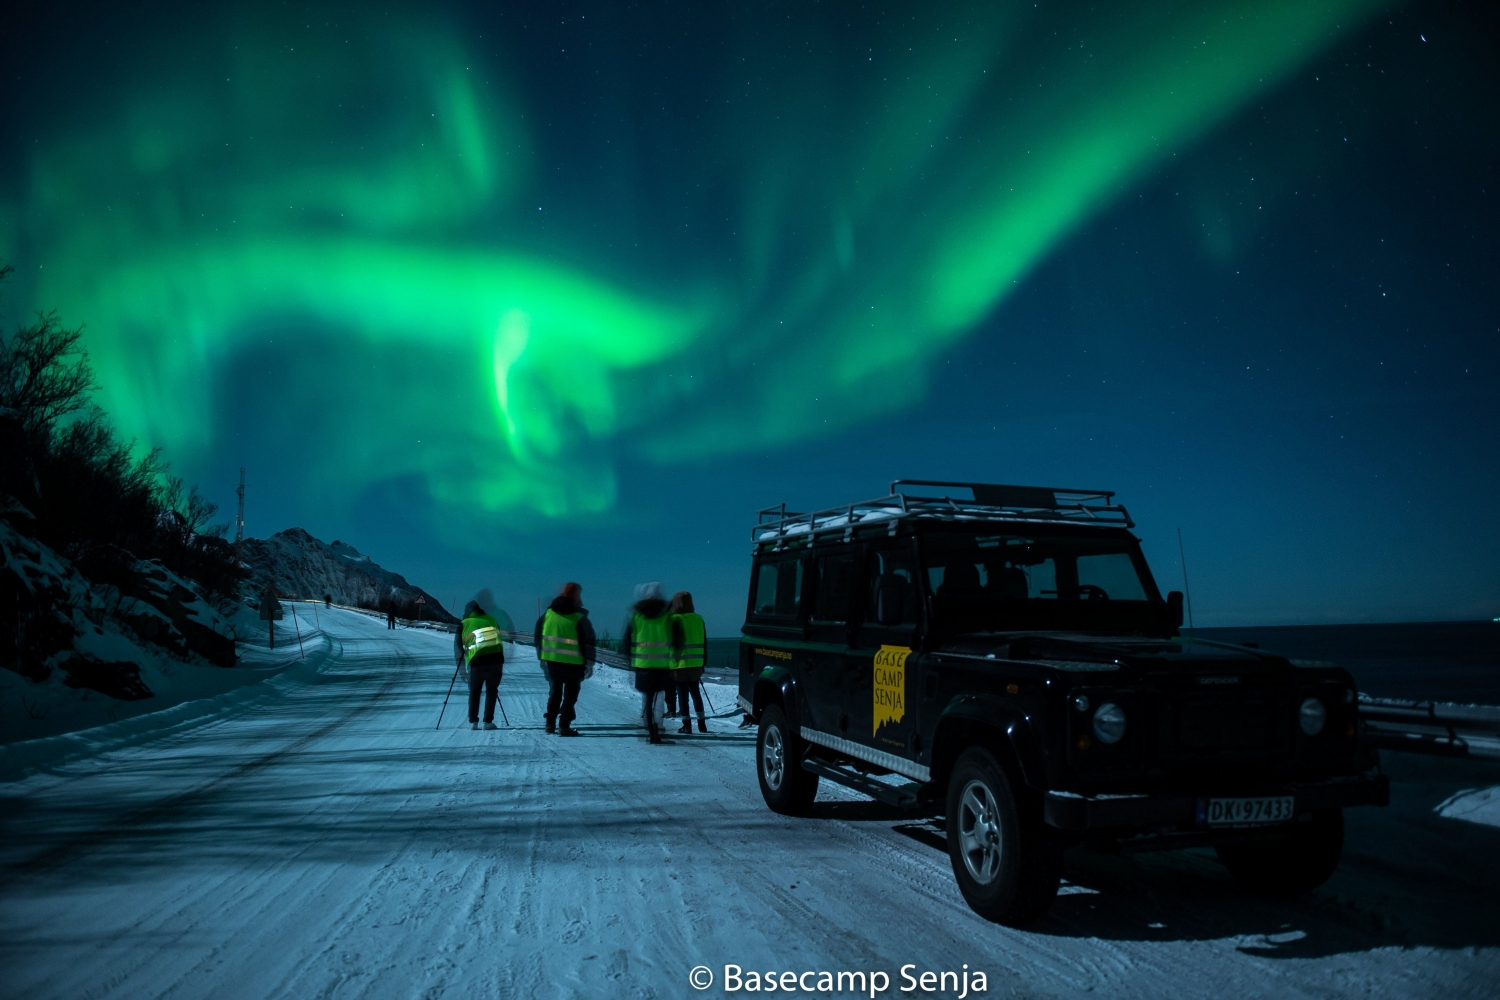 A truck parked on a snowy road with people and Northern Lights in the background